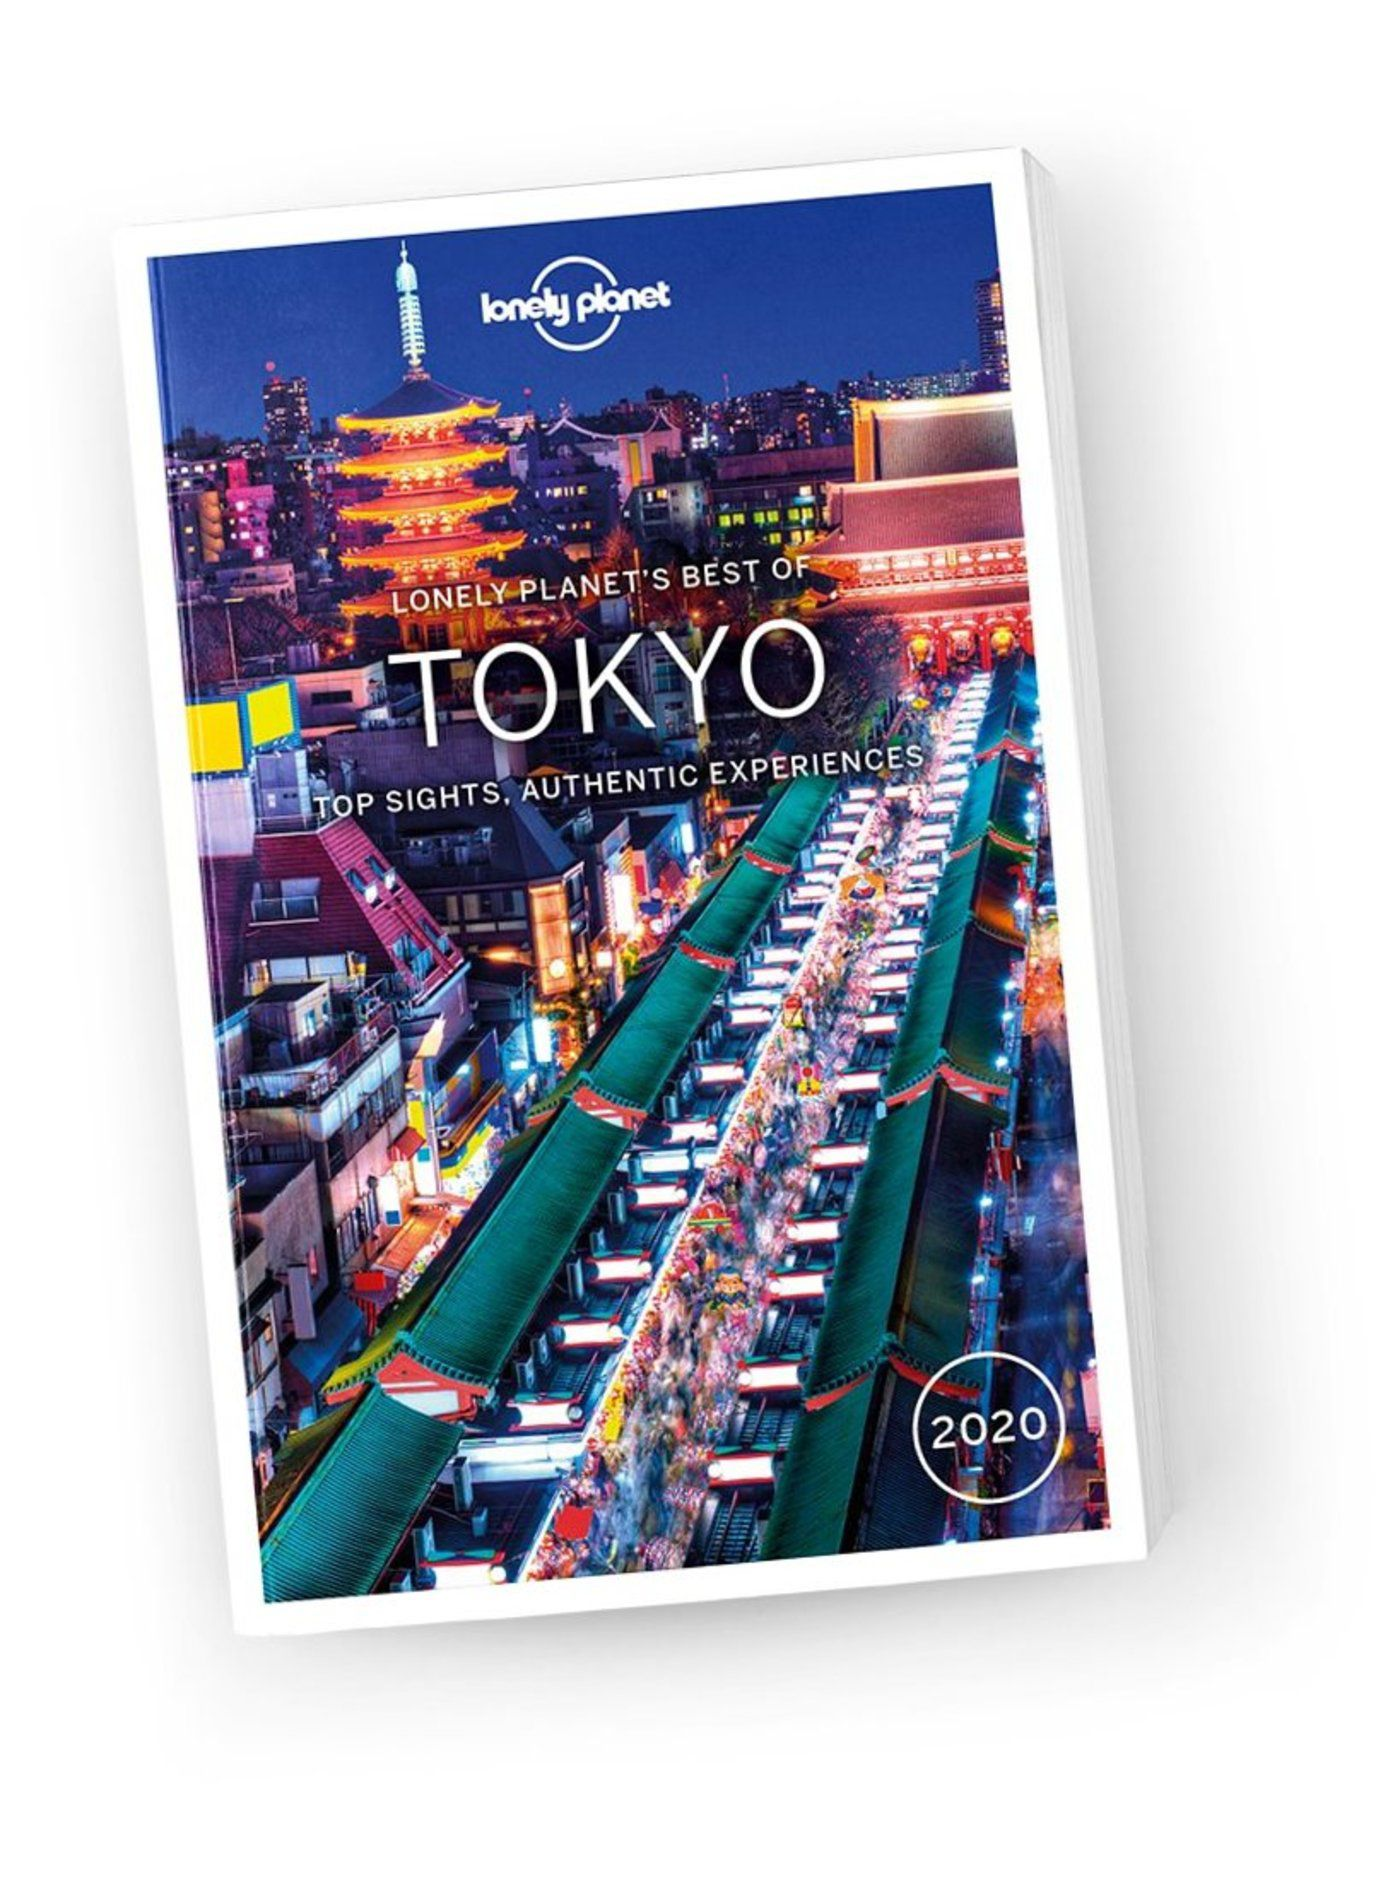 Best of Tokyo 2020 city guide